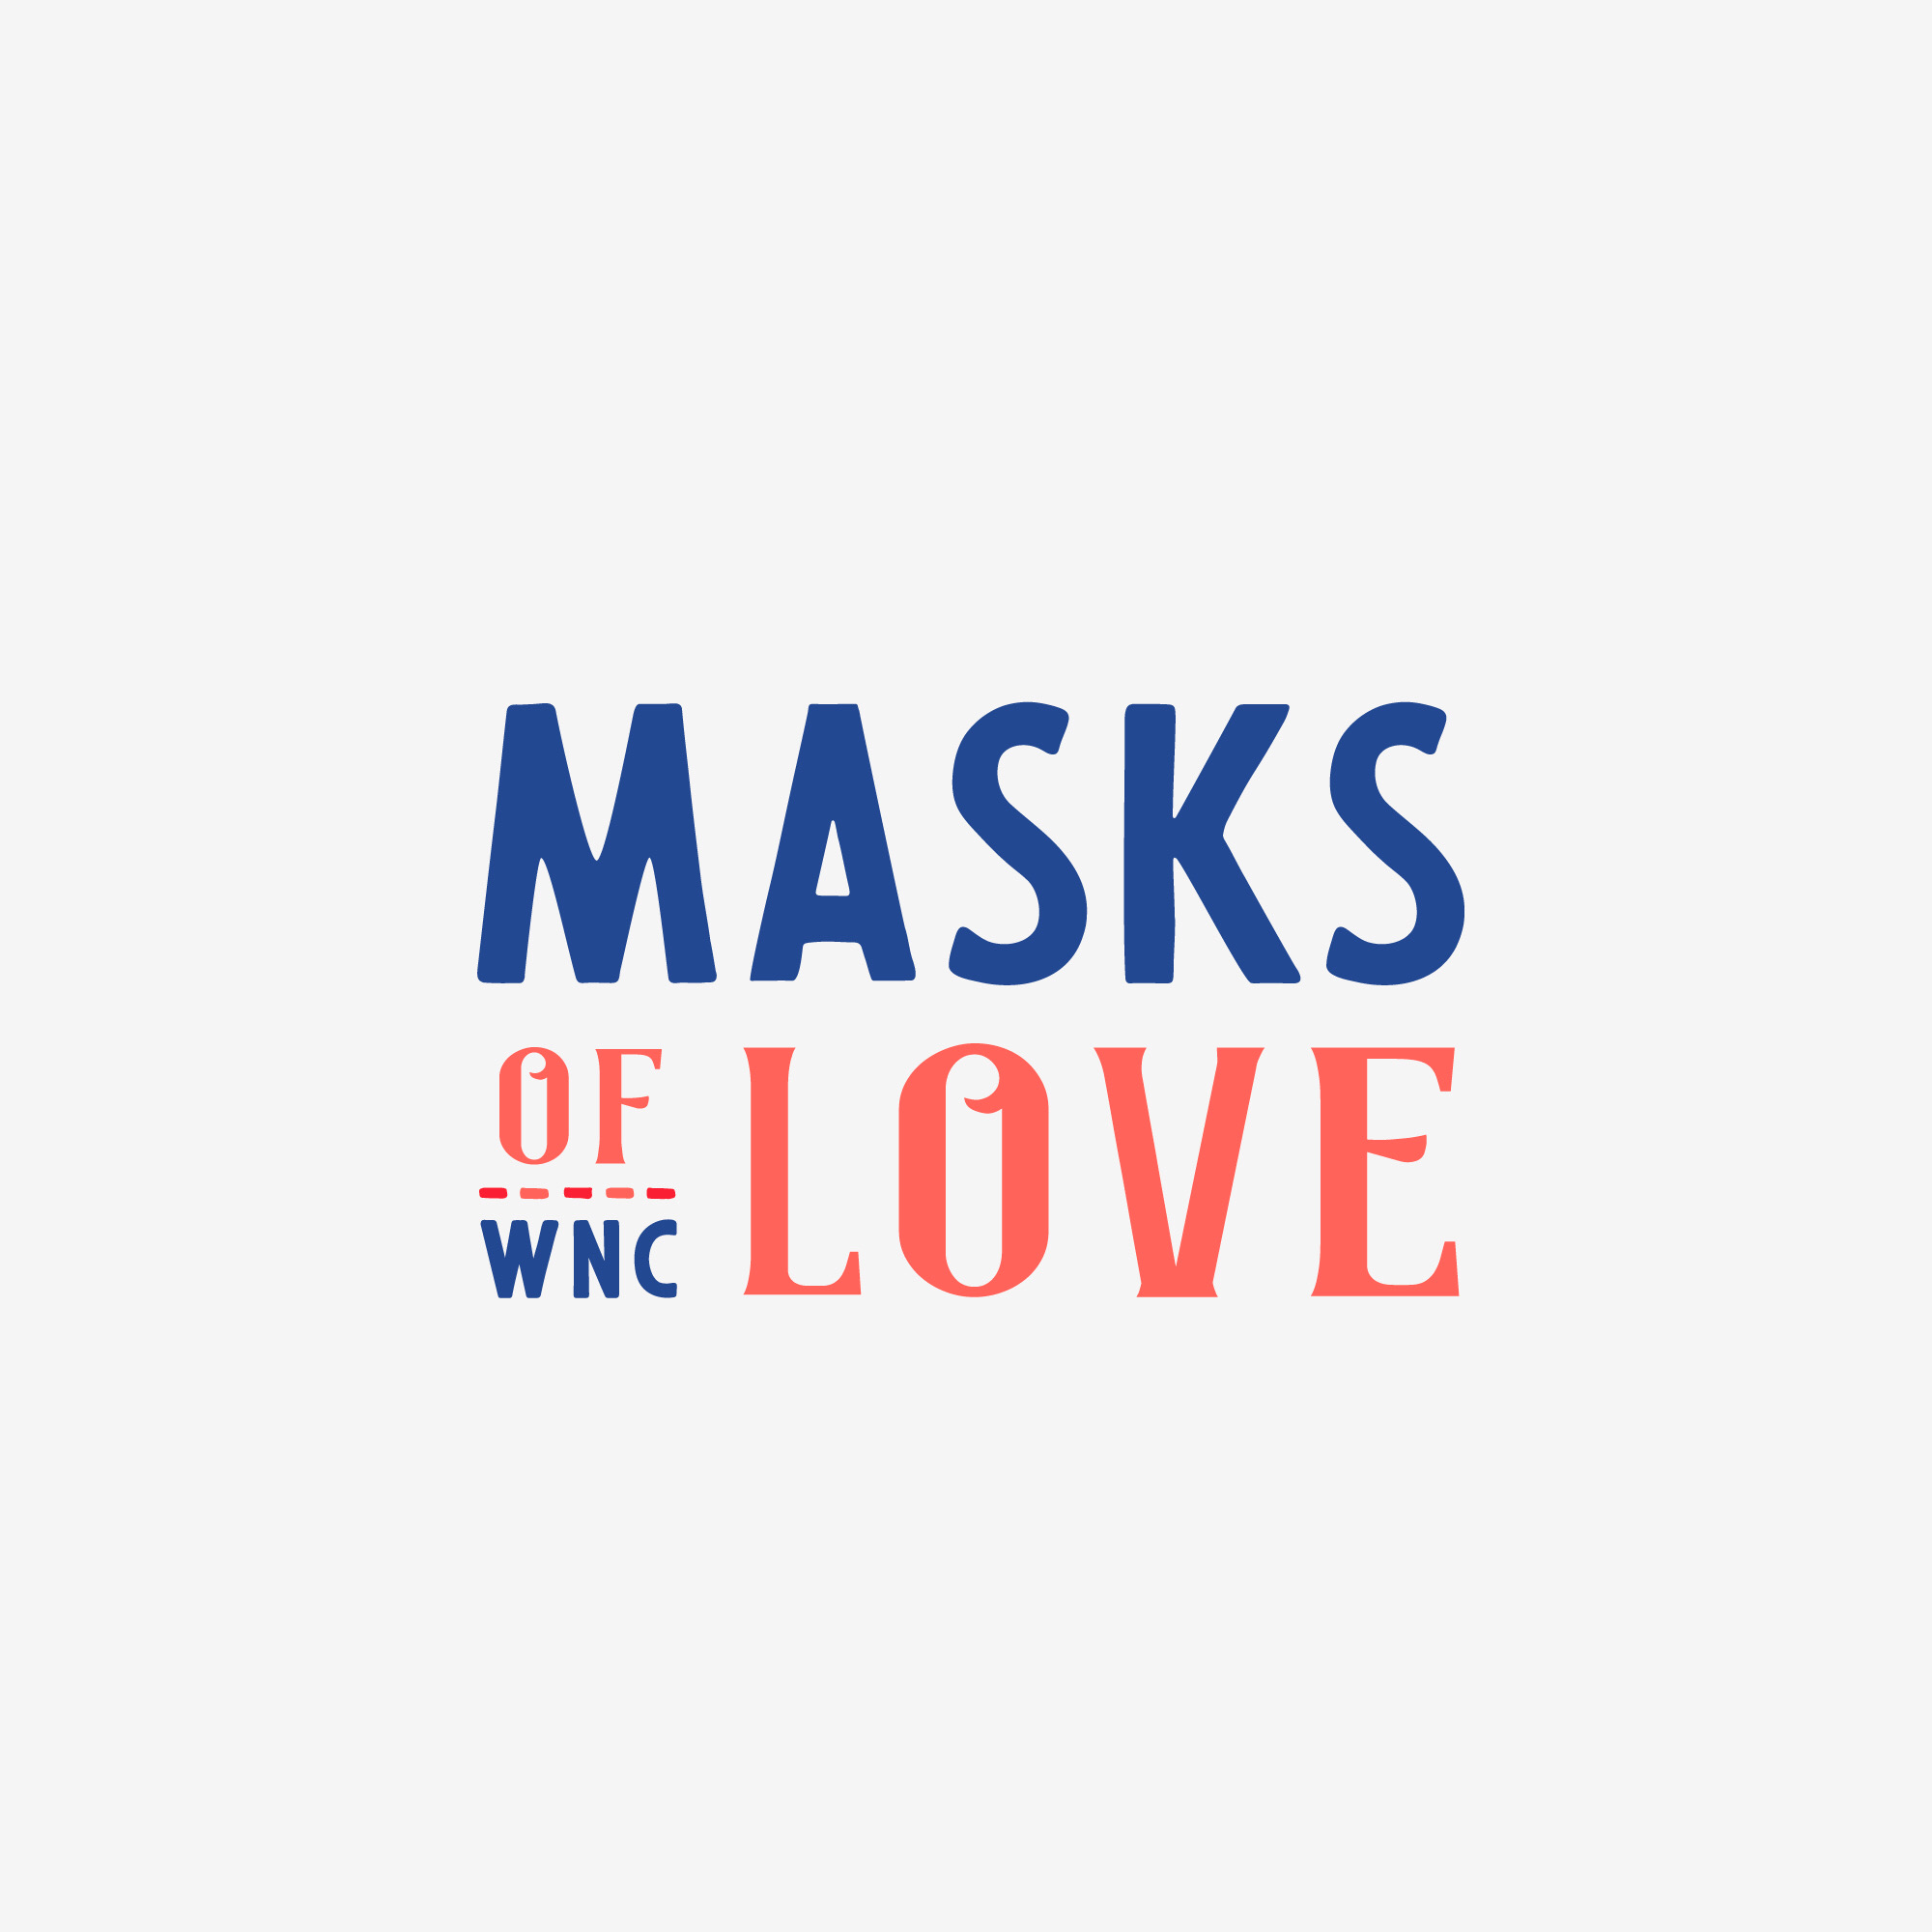 None-profit Logo donation relief covid medical mask wnc love custom logos asheville lettering logo masks